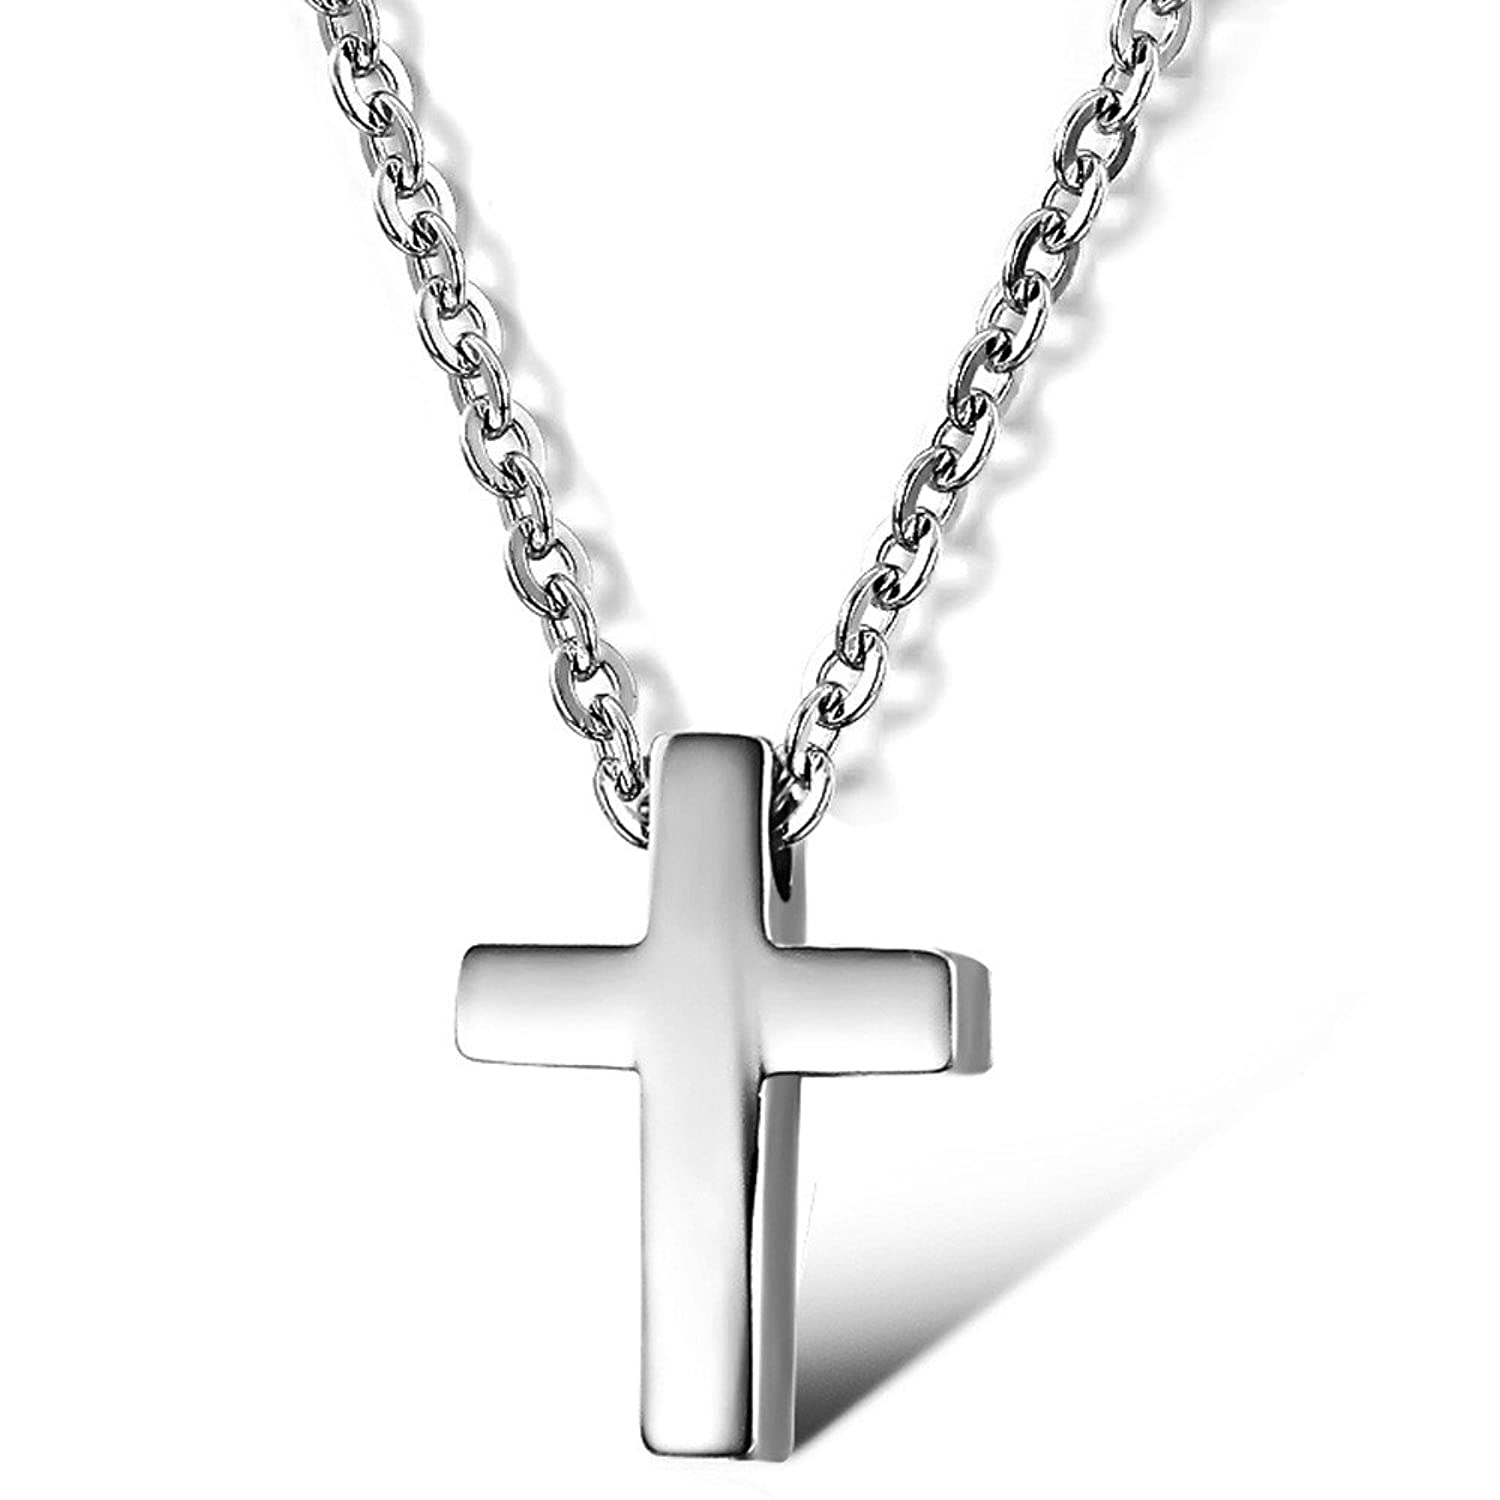 Amazon 3aries small titanium stainless steel simple glossy amazon 3aries small titanium stainless steel simple glossy cross pendant silver womenmen necklace jewelry aloadofball Images